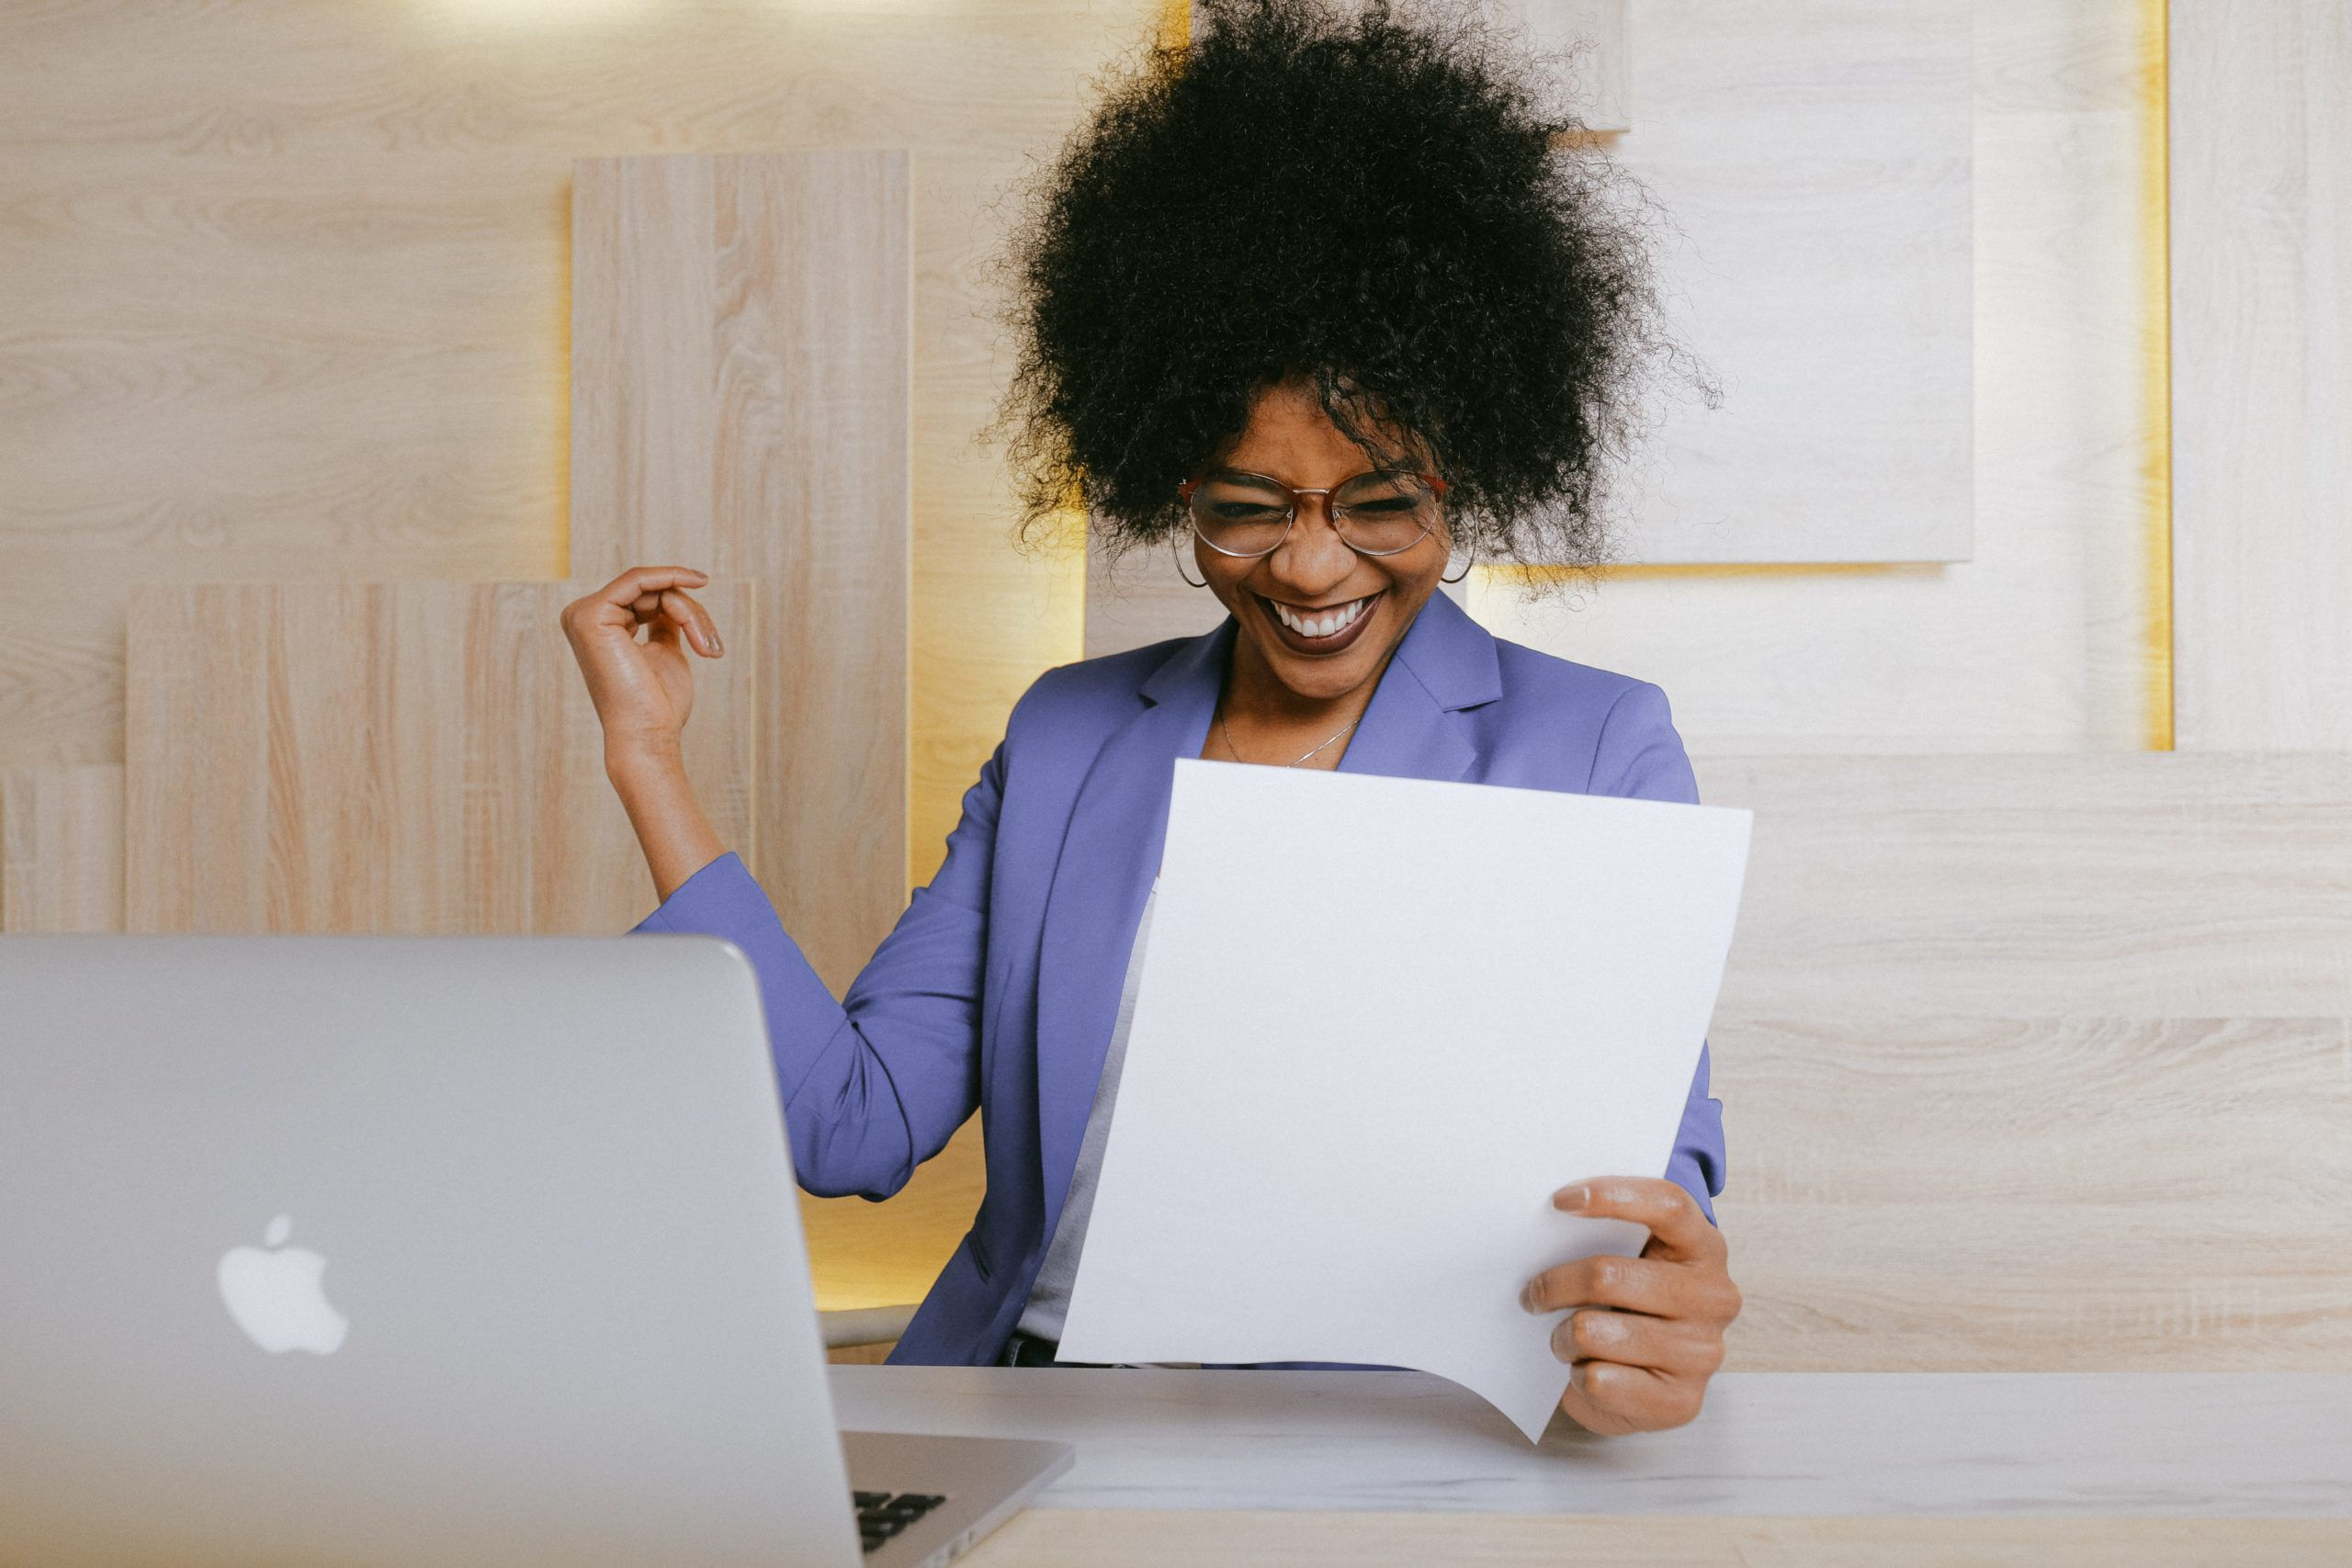 African American woman sitting at her desk, with her Apple computer and papers in hand, expressing joy